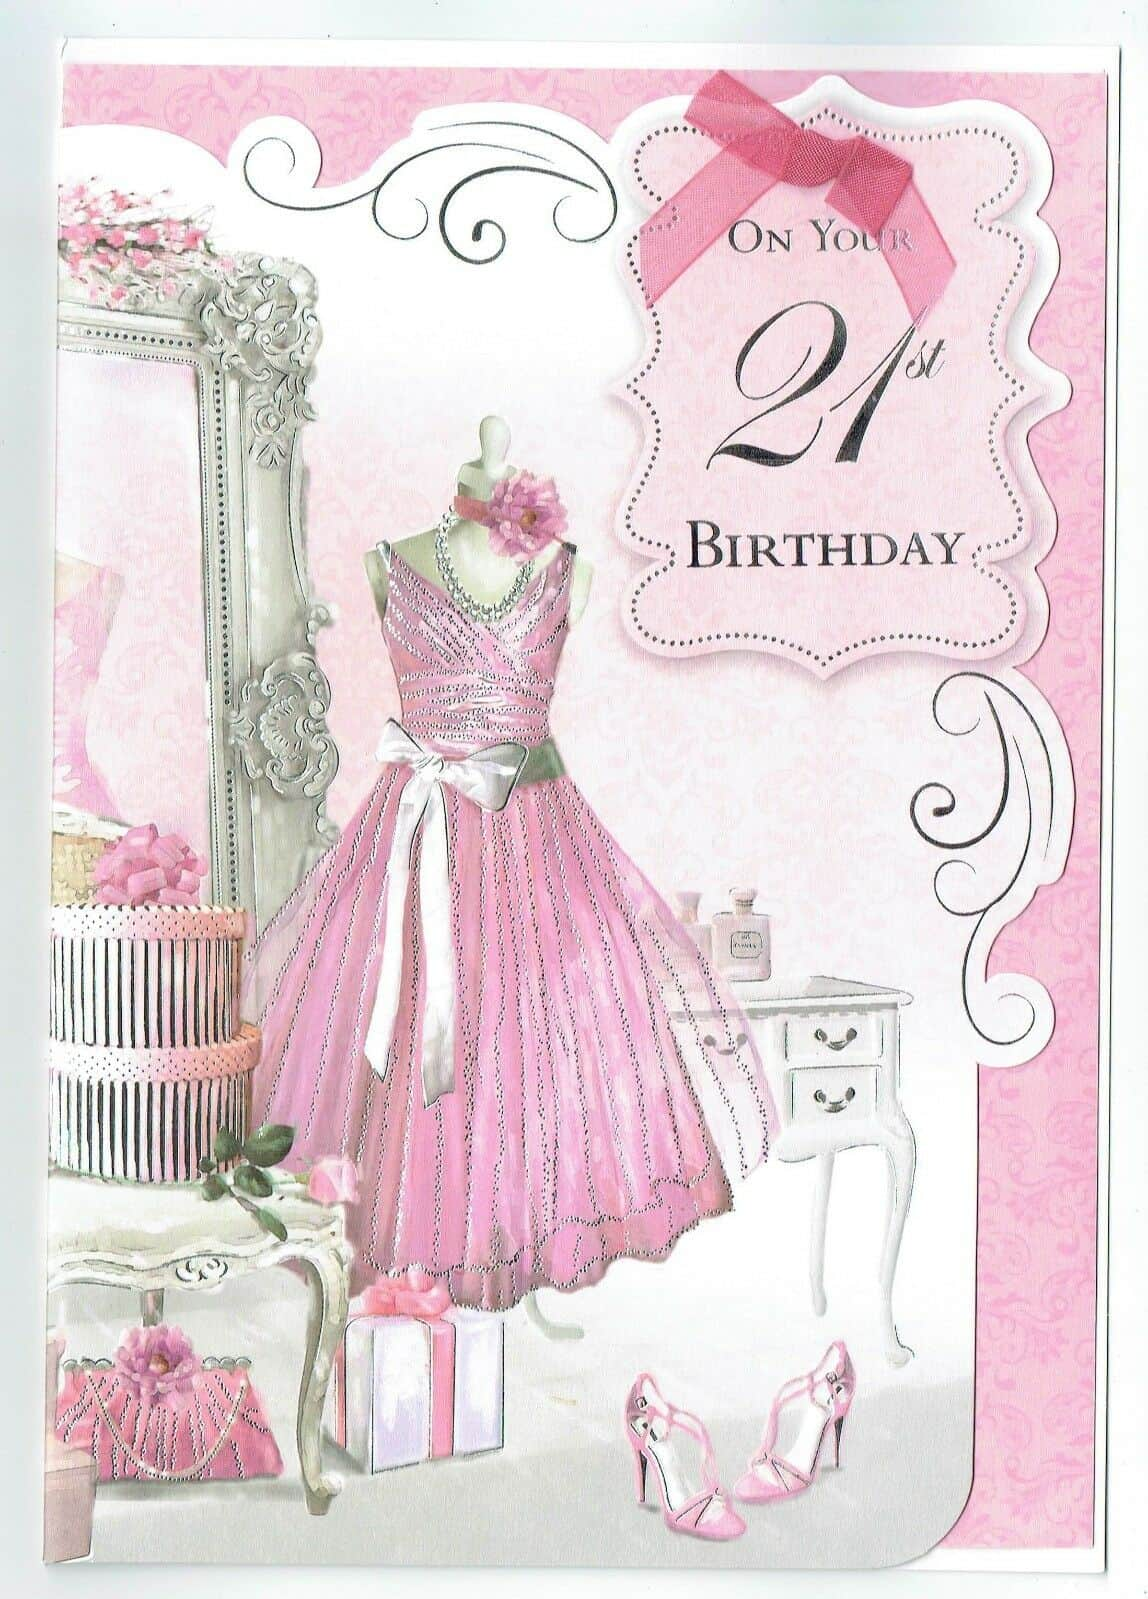 Daughter Birthday 21st Card With Pink Mannequinn Design